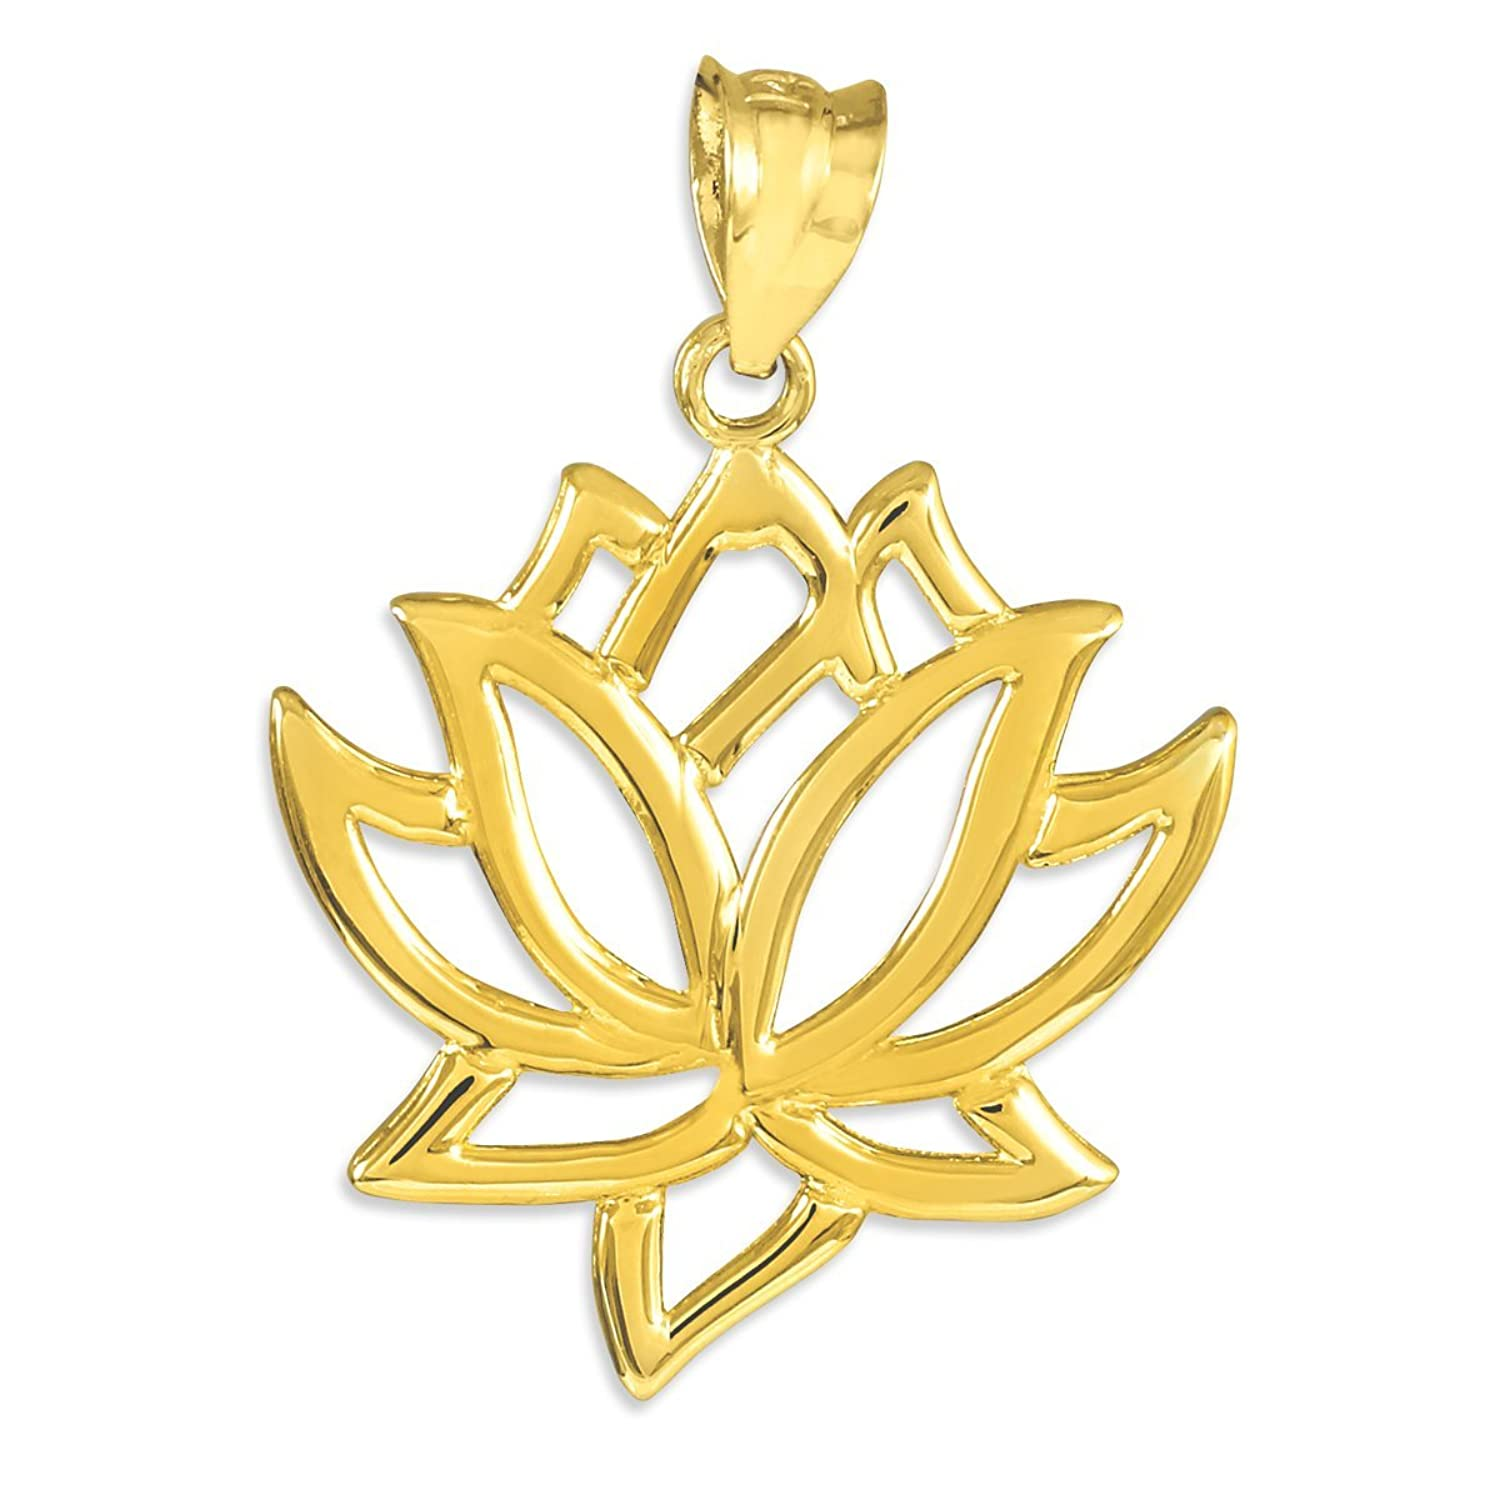 shop silver creations pendant exquisite pendants jodee beauty sterling lotus